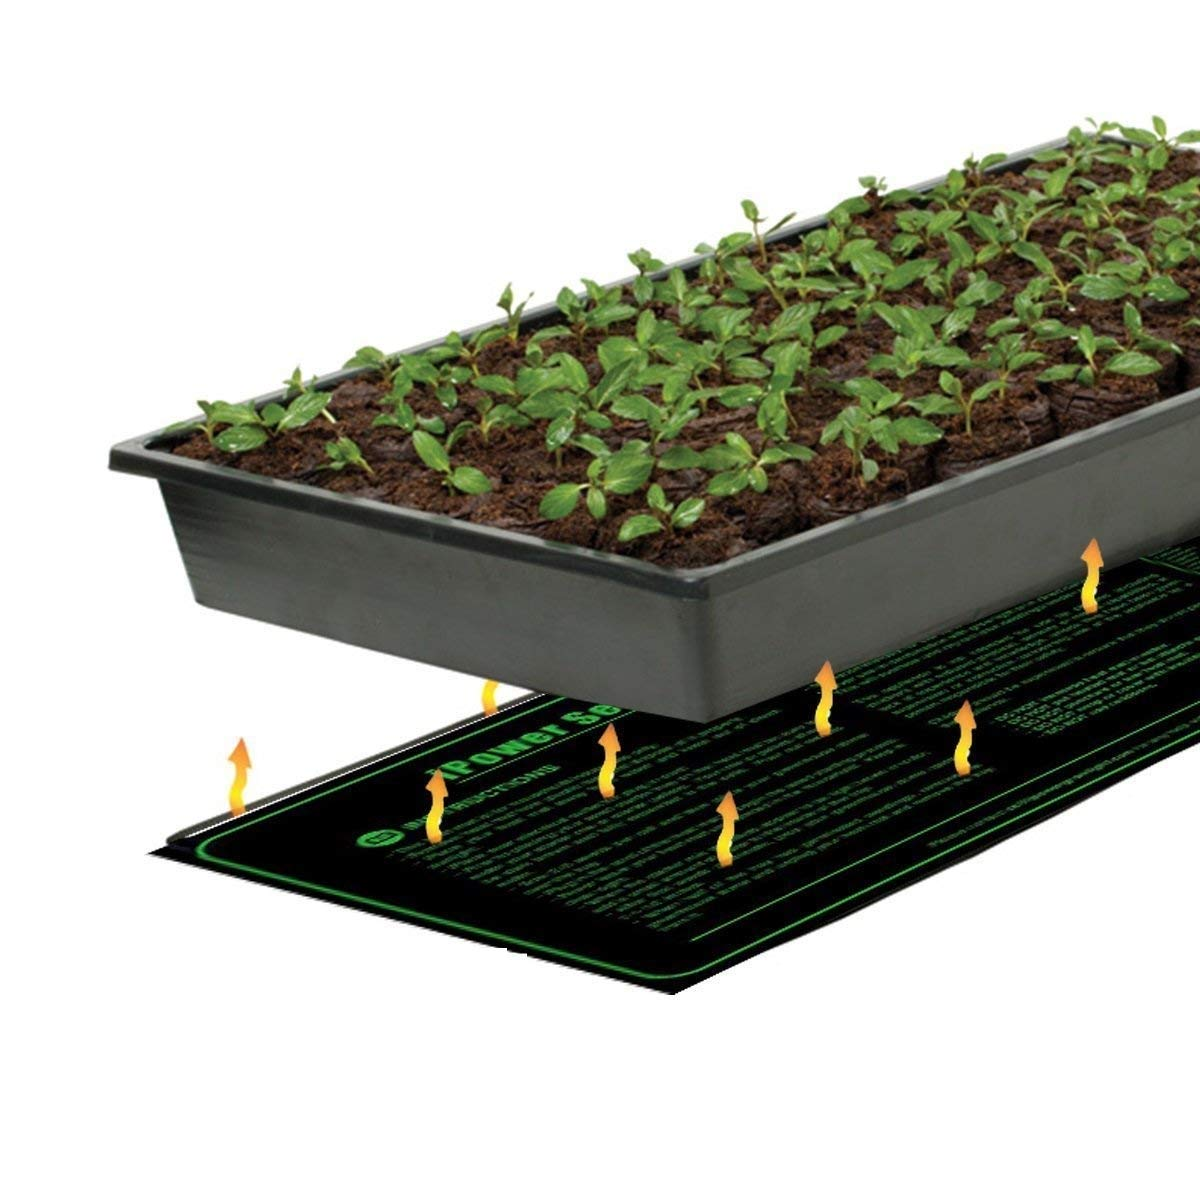 iPower 10'' x 20.5'' Hydroponic Seedling Heat Mat and Digital Thermostat Control and Humidity Monitor Indoor Thermometer Combo Set for Seed Germination, Black by iPower